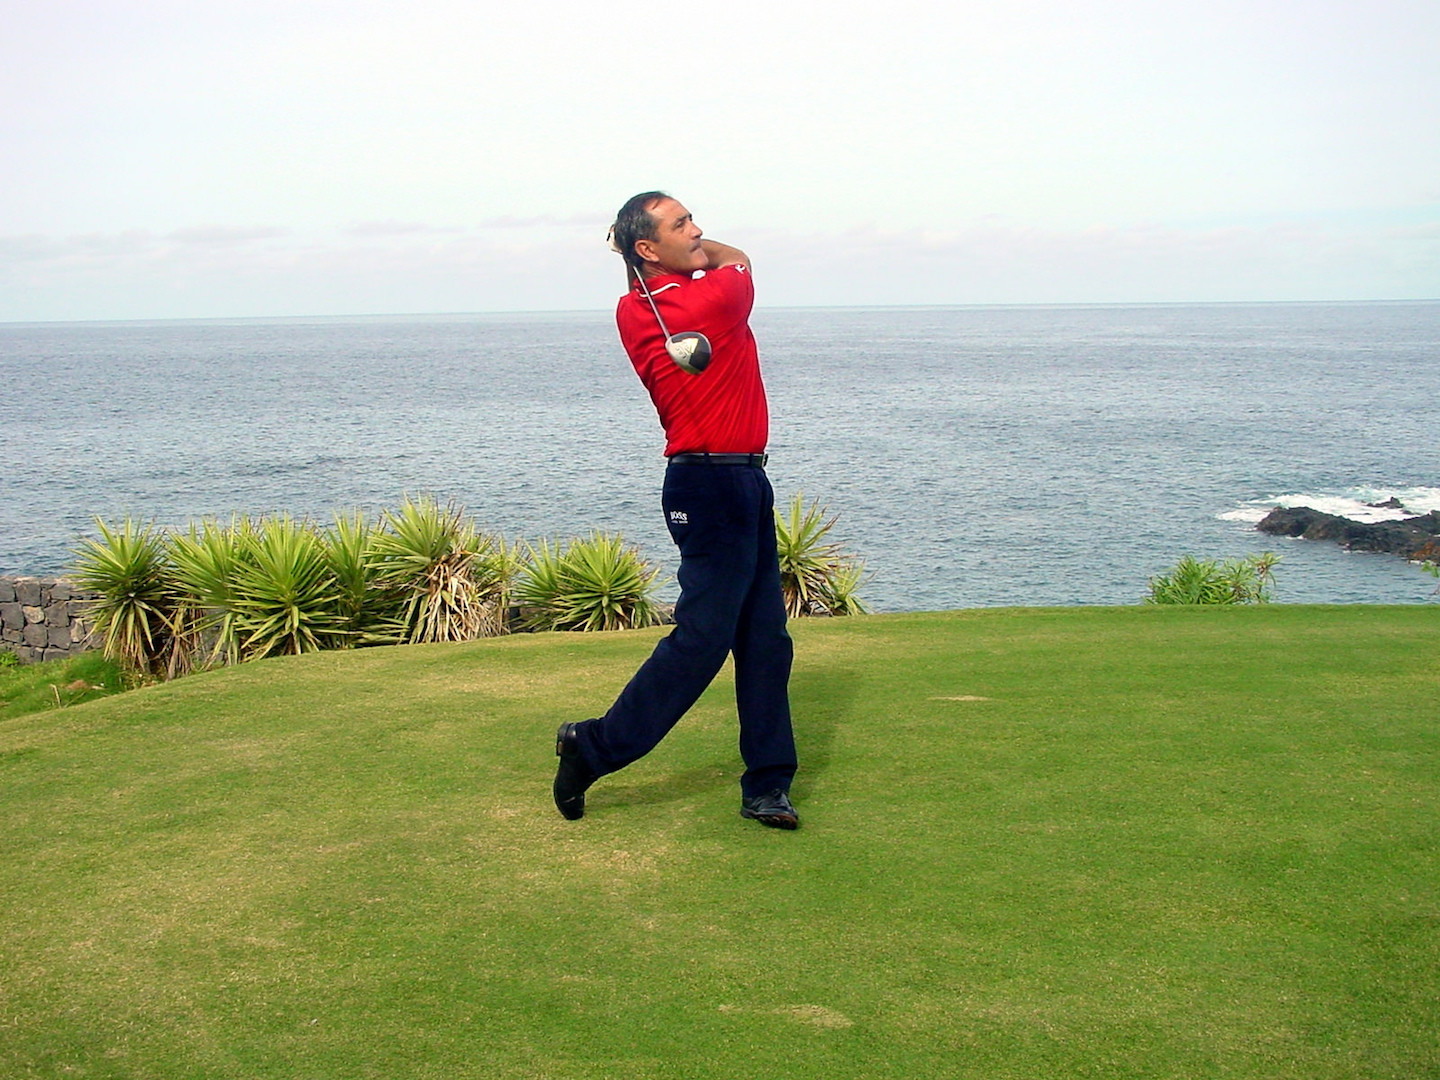 Play a Seve course in Tenerife